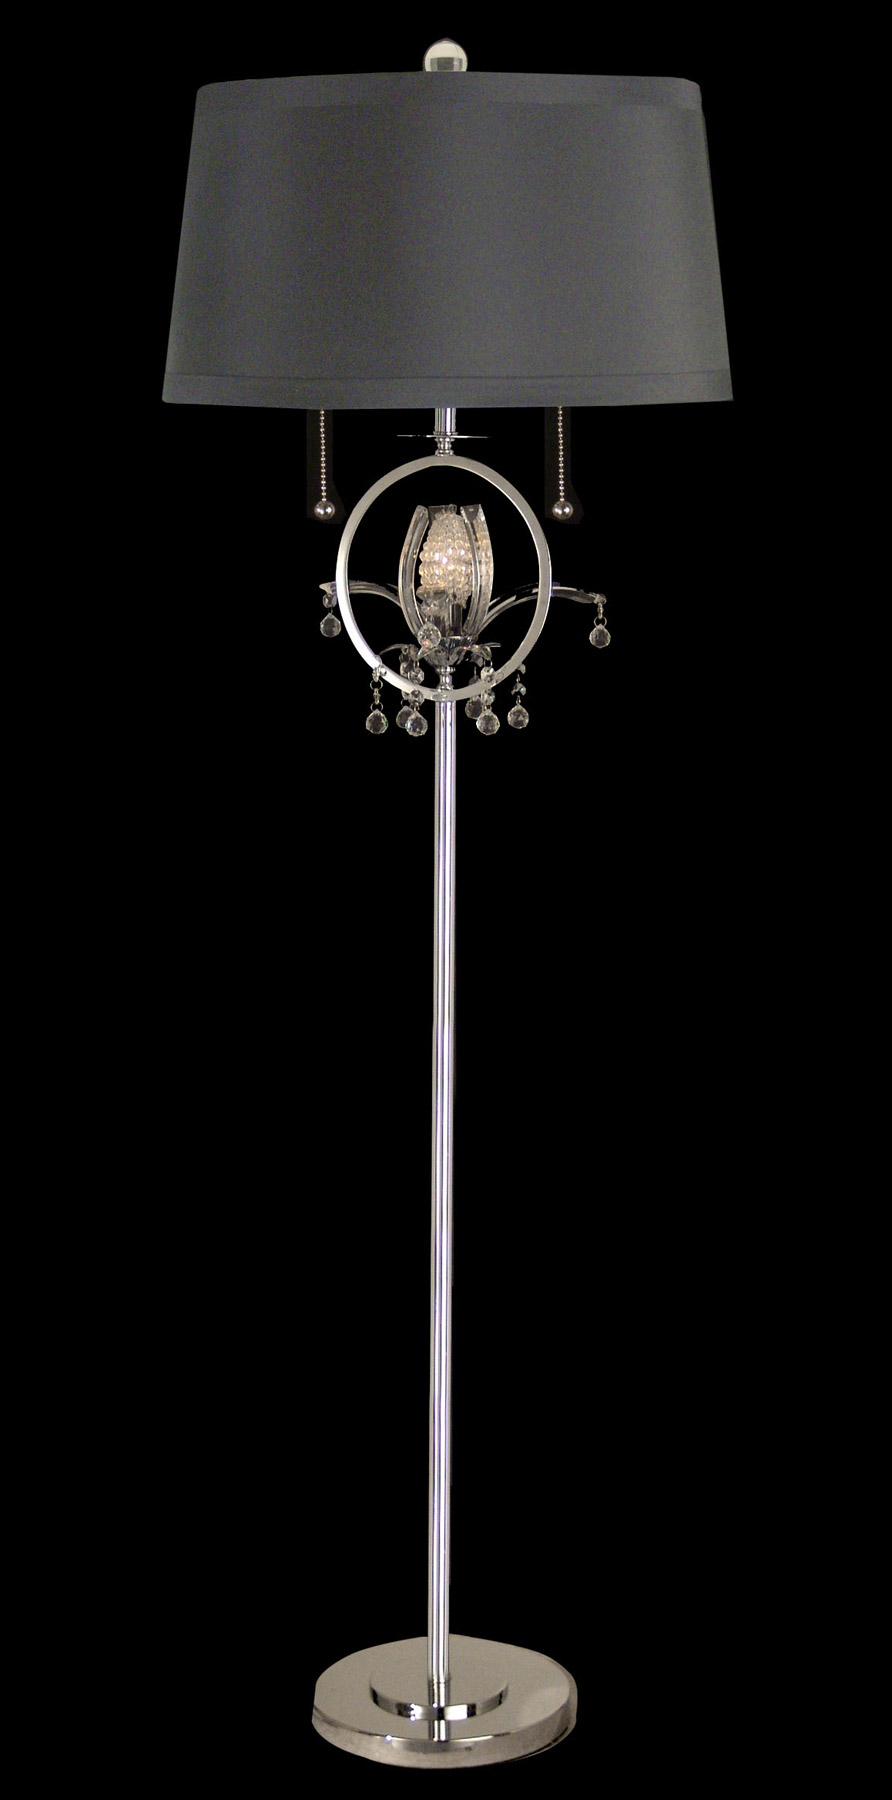 home lamps floor lamps standard floor lamps dale tiffany. Black Bedroom Furniture Sets. Home Design Ideas